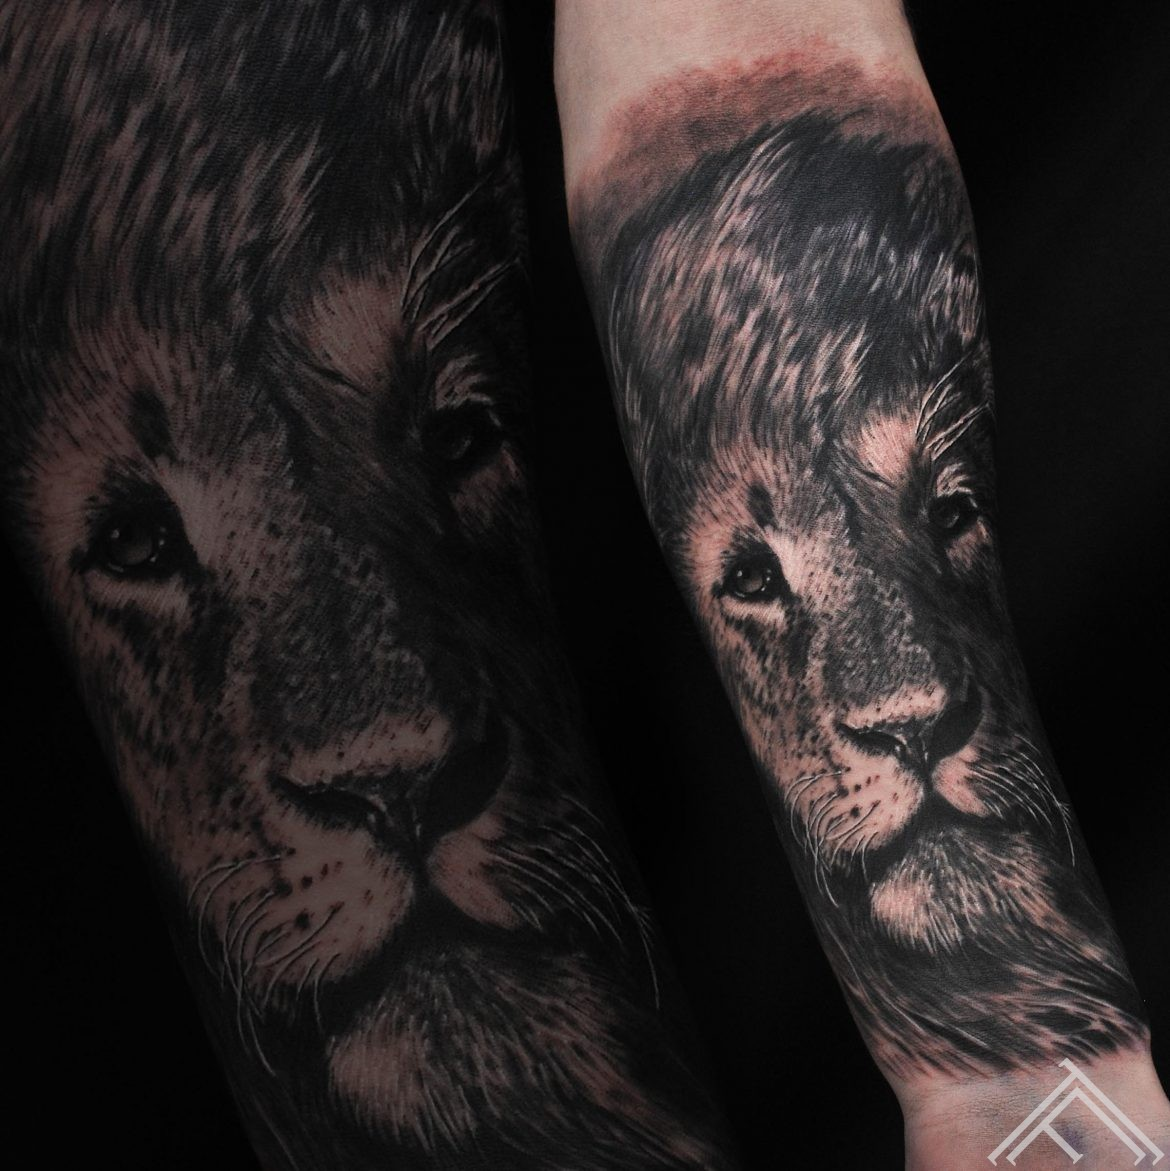 lion-lauva-tetovejums-tattoo-tattoofequency-riga-art-andersontattoo